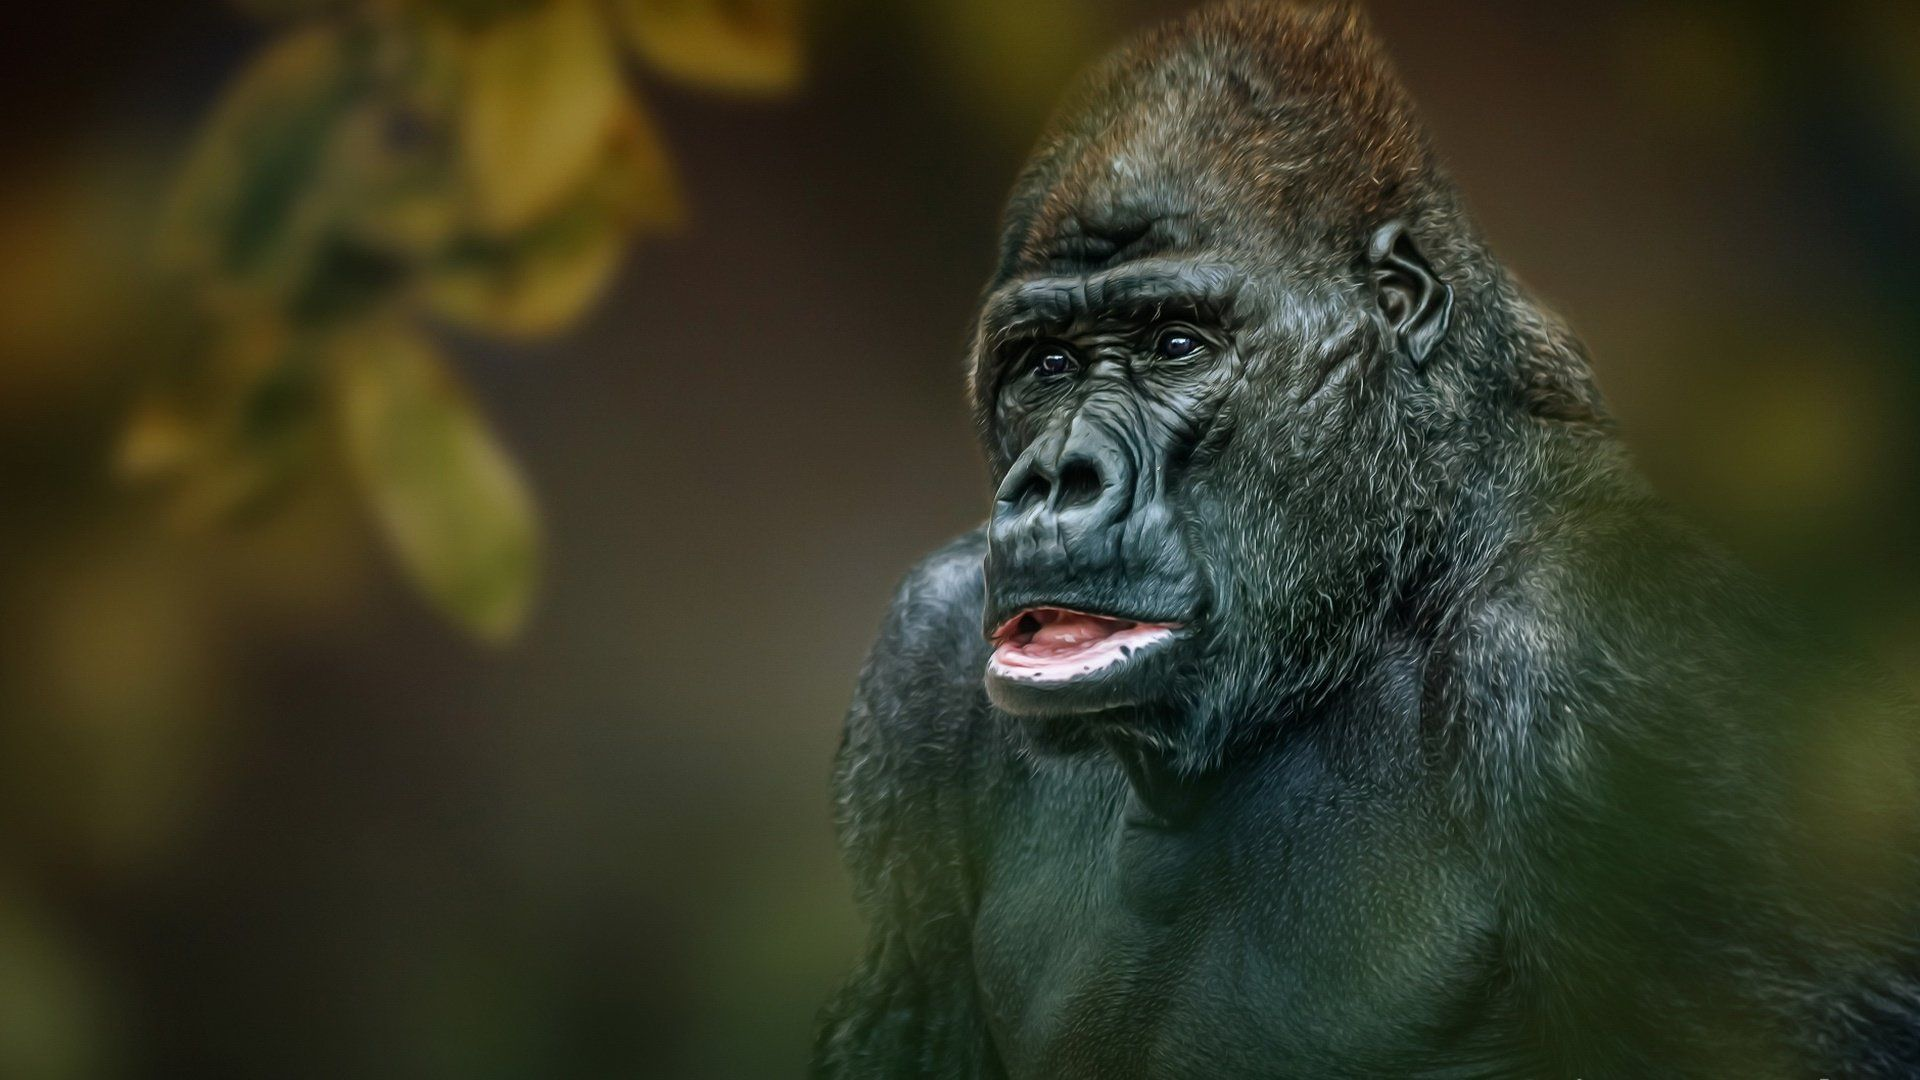 Face Gorilla Wallpaper